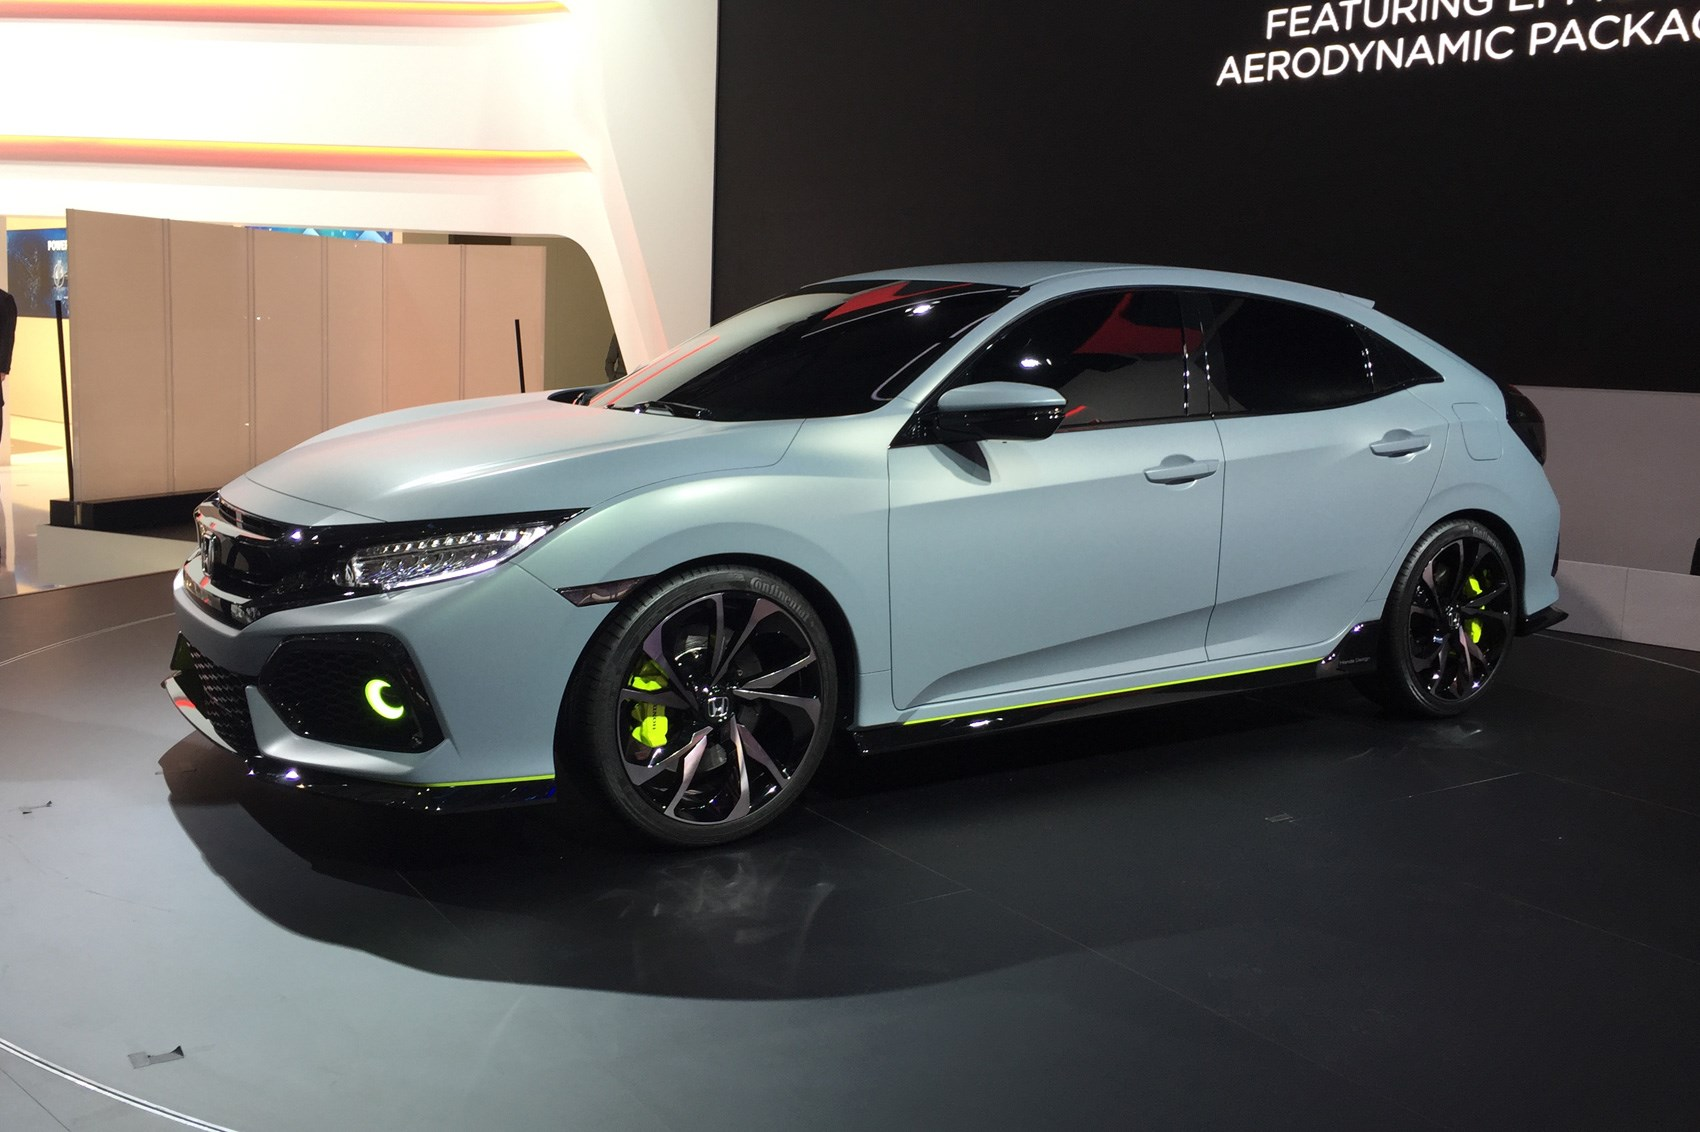 New 2017 Honda Civic prototype unveiled in Geneva | CAR Magazine